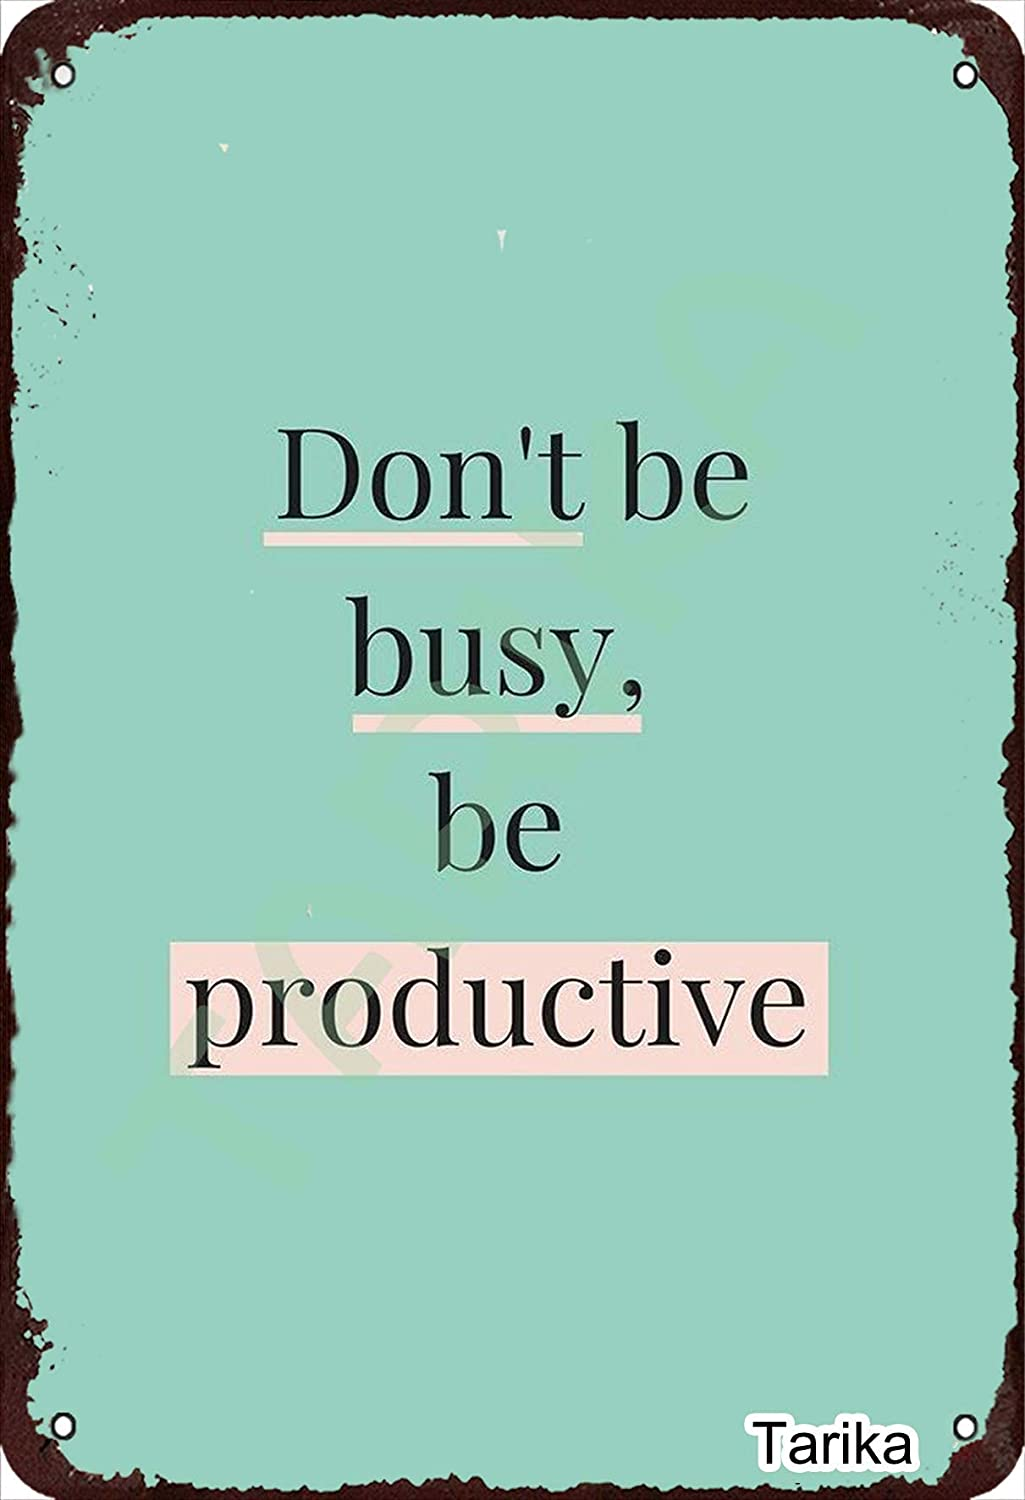 Inspirational Quotes Don't Be Busy Being Productive 20X30 cm Vintage Look Metal Decoration Plaque Sign for Home Kitchen Bathroom Farm Garden Garage Inspirational Quotes Wall Decor